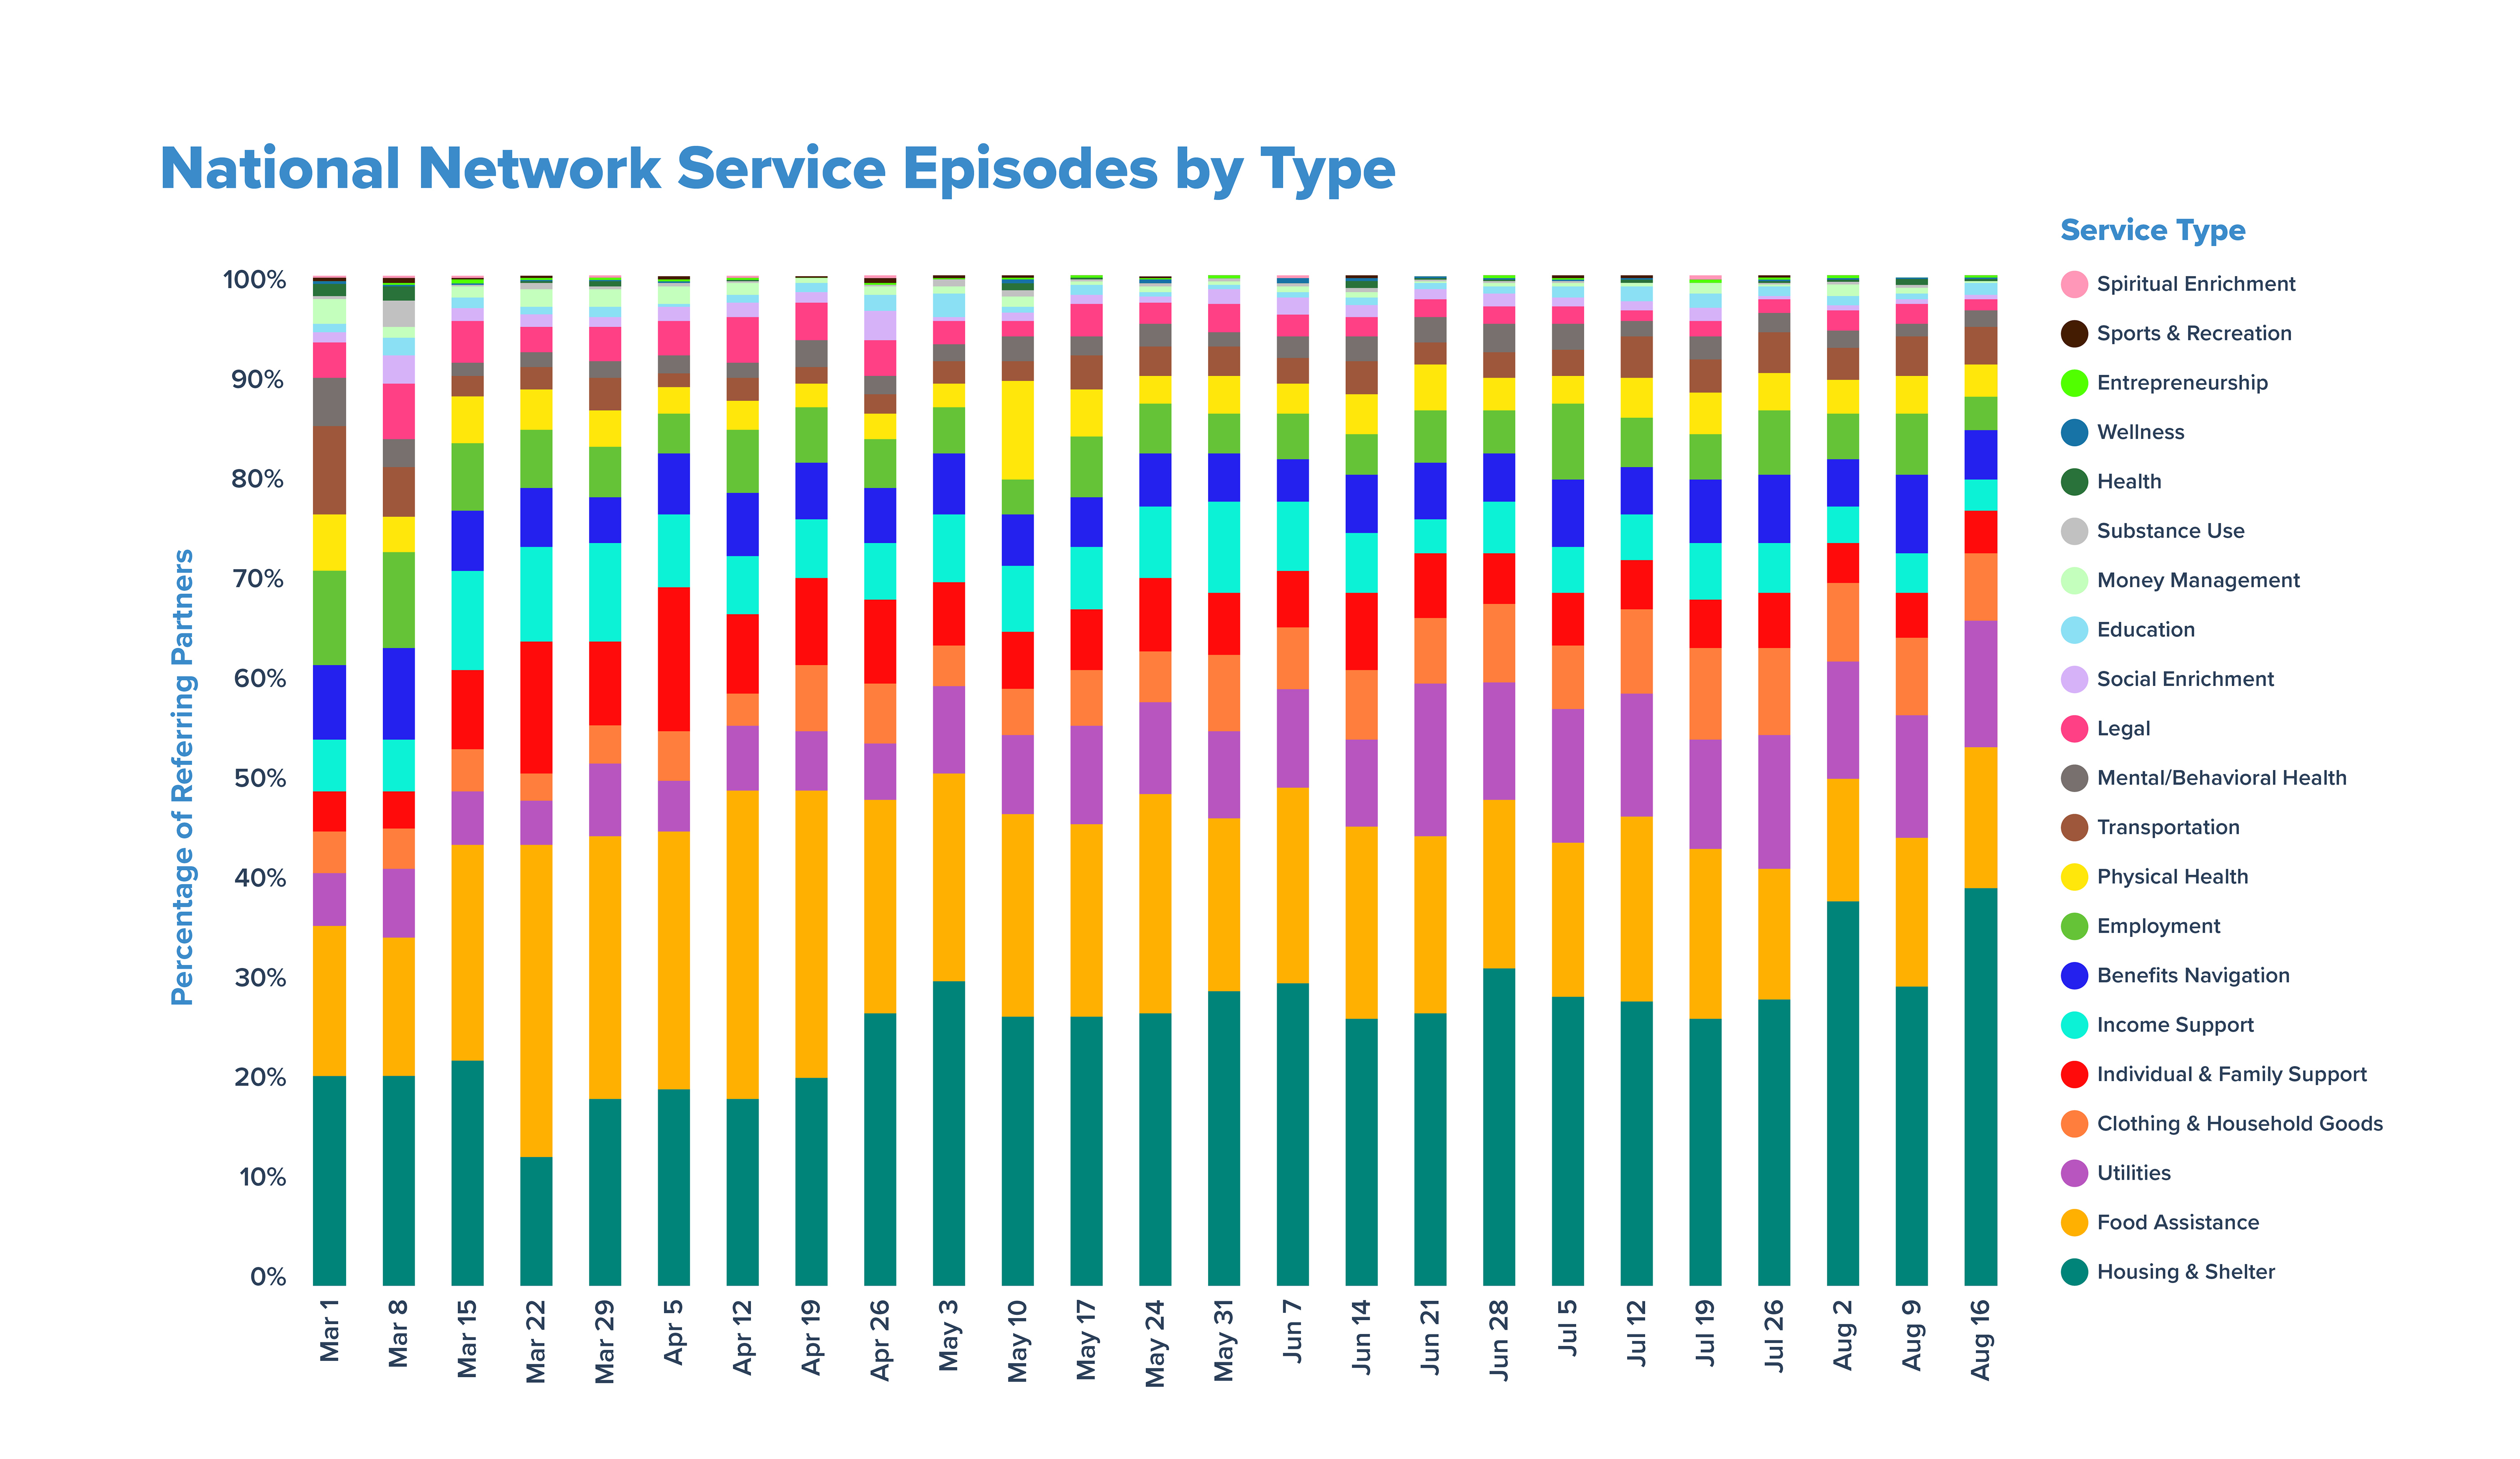 National Network Service Episodes by Type